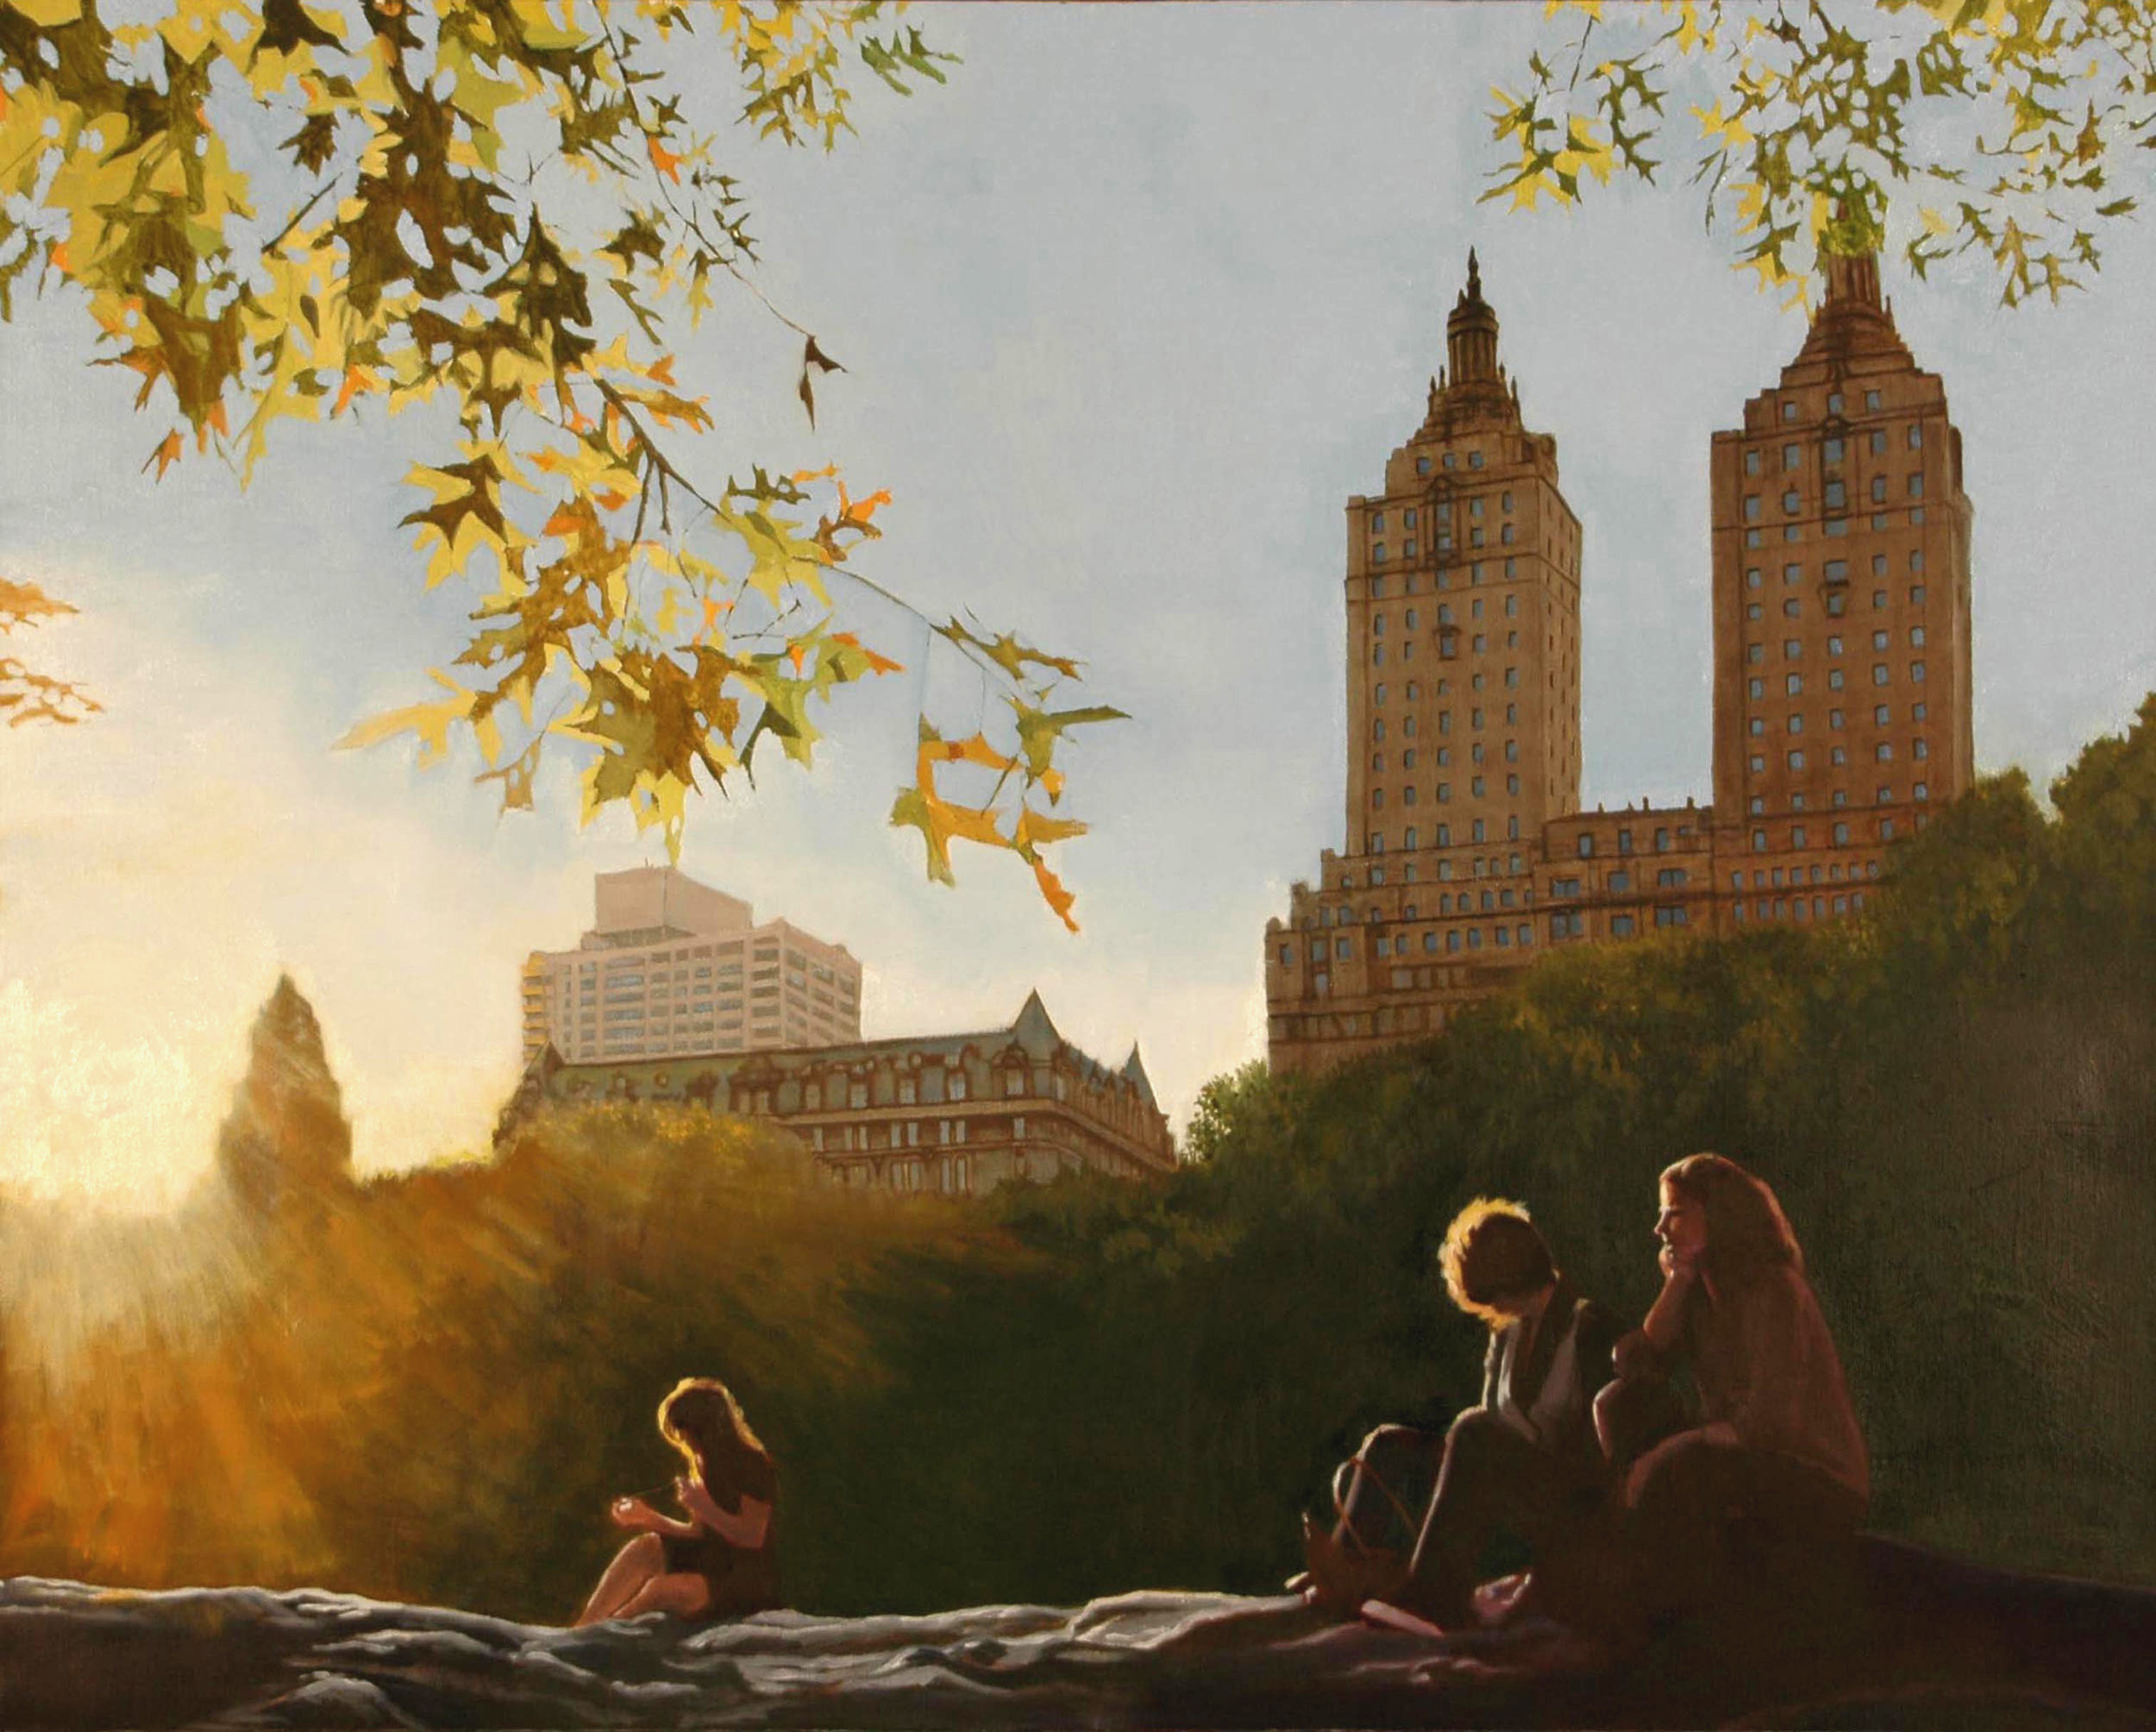 Friday Afternoon in Central Park